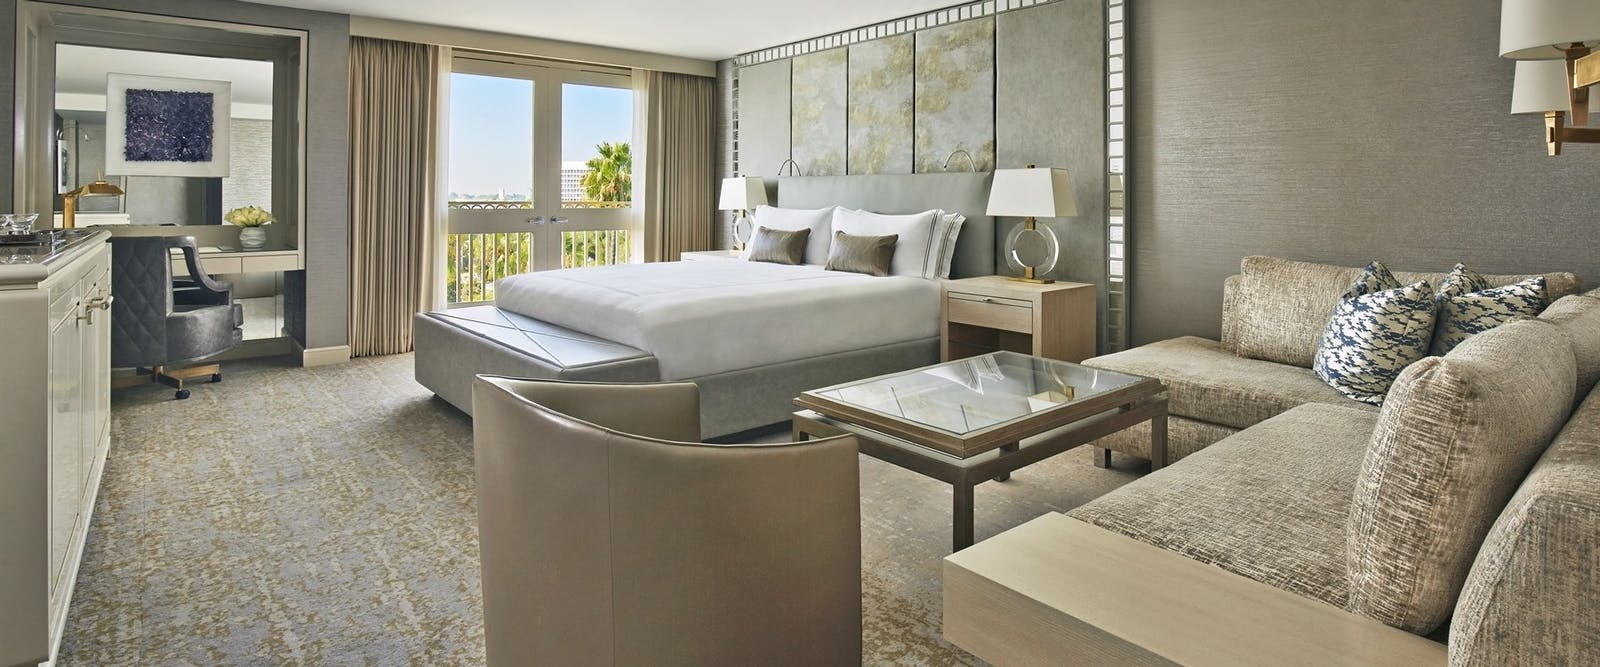 Viceroy Skyline Suite at at Viceroy L'Ermitage Beverly Hills